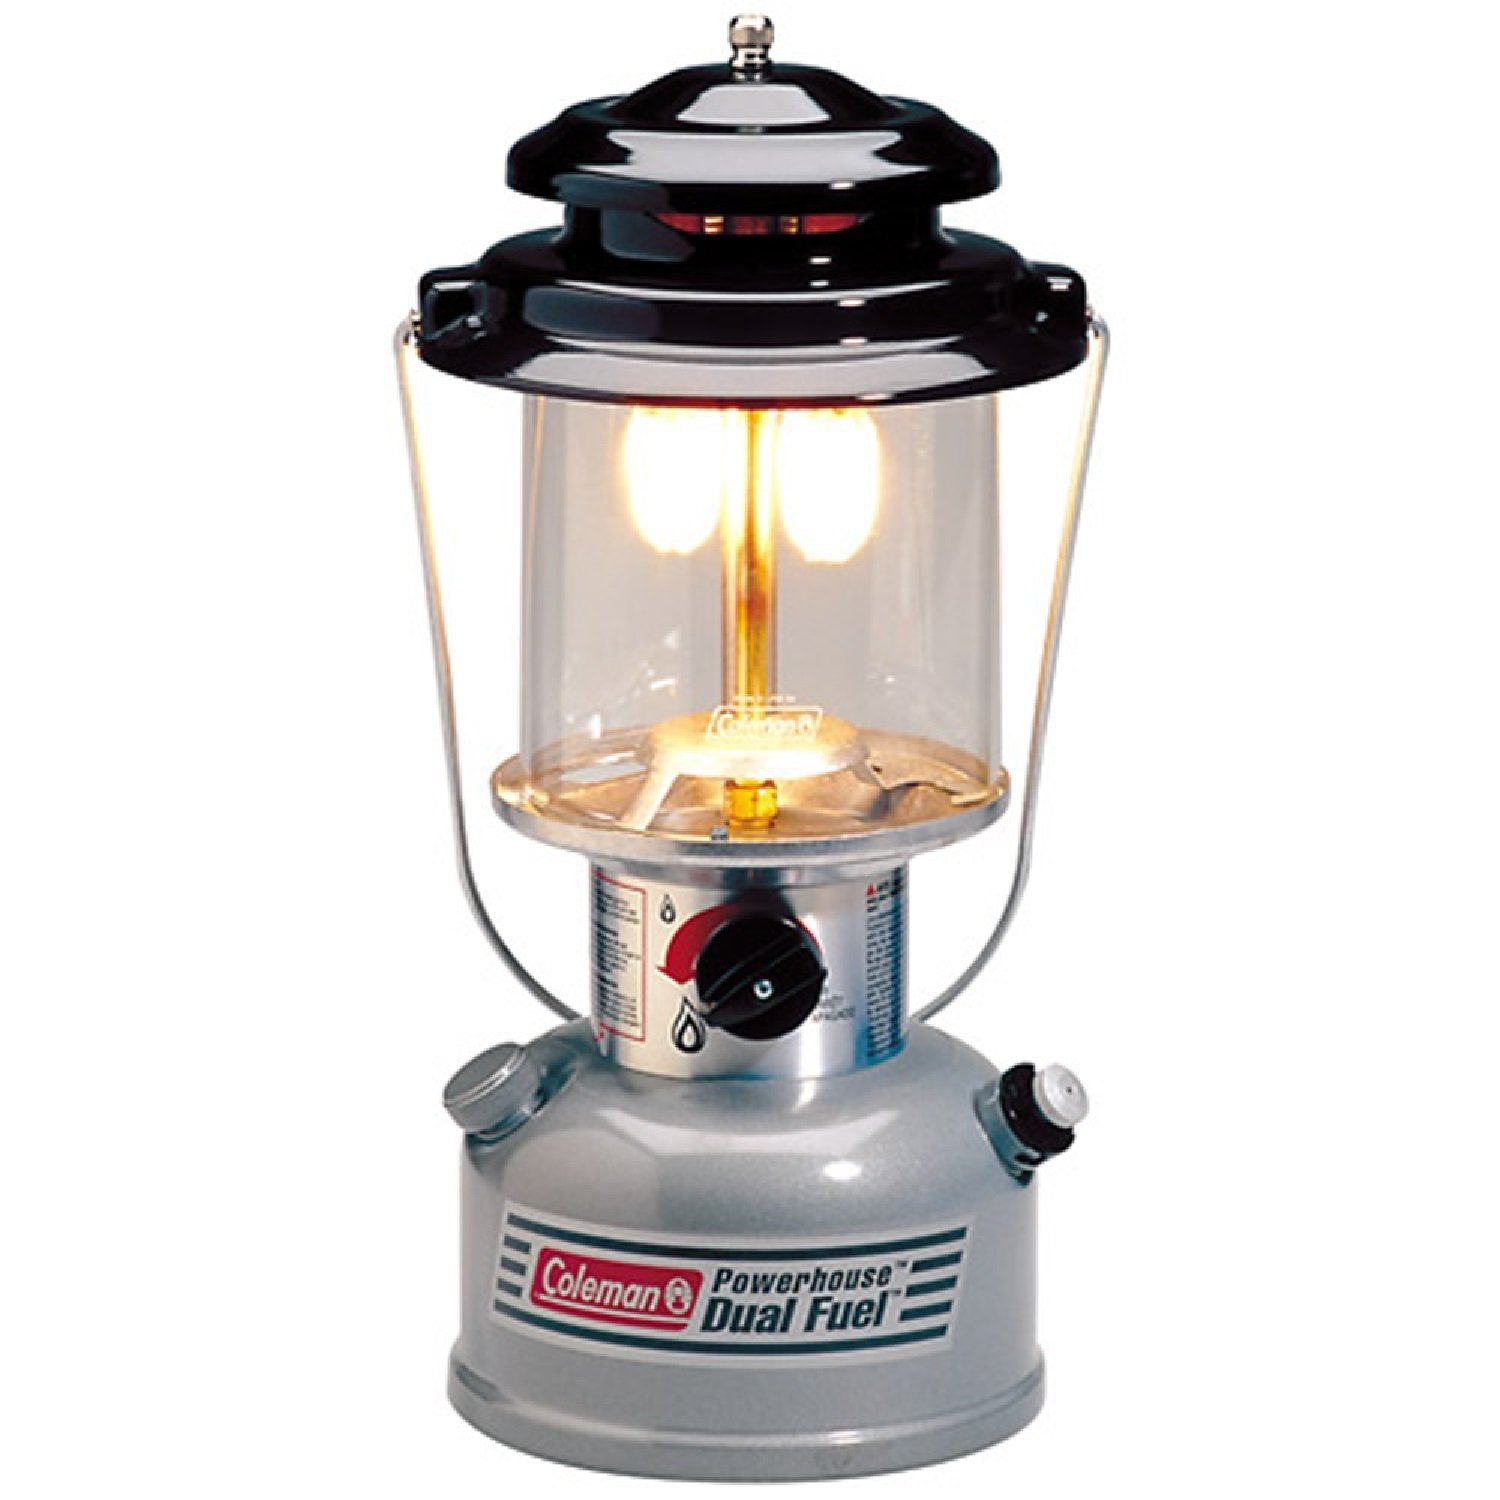 GE 4D Enbrighten Lantern, 500 Lumens, 180 Hrs Battery Life, IPX4 Water Resistant, Red, 11012